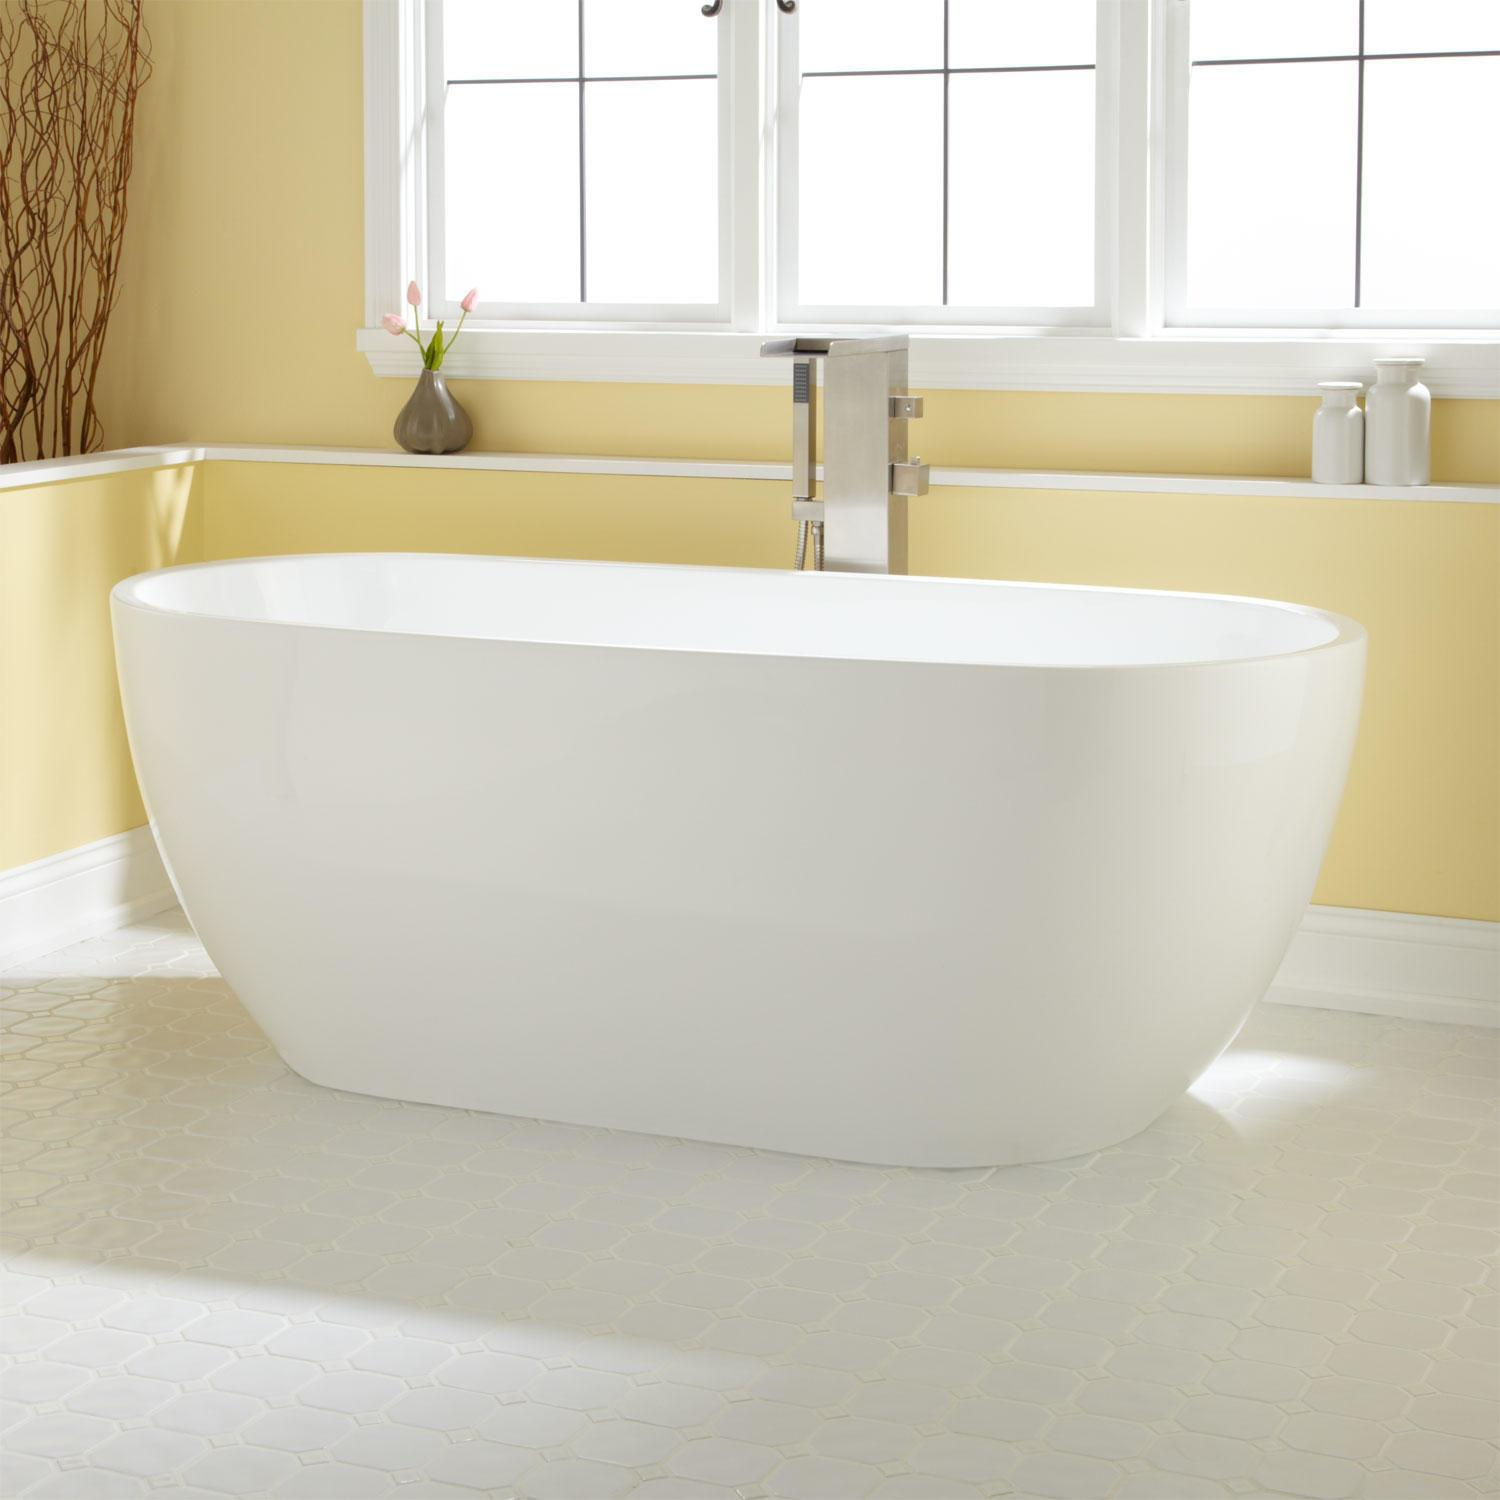 Dana Round Acrylic Soaking Tub Bathroom